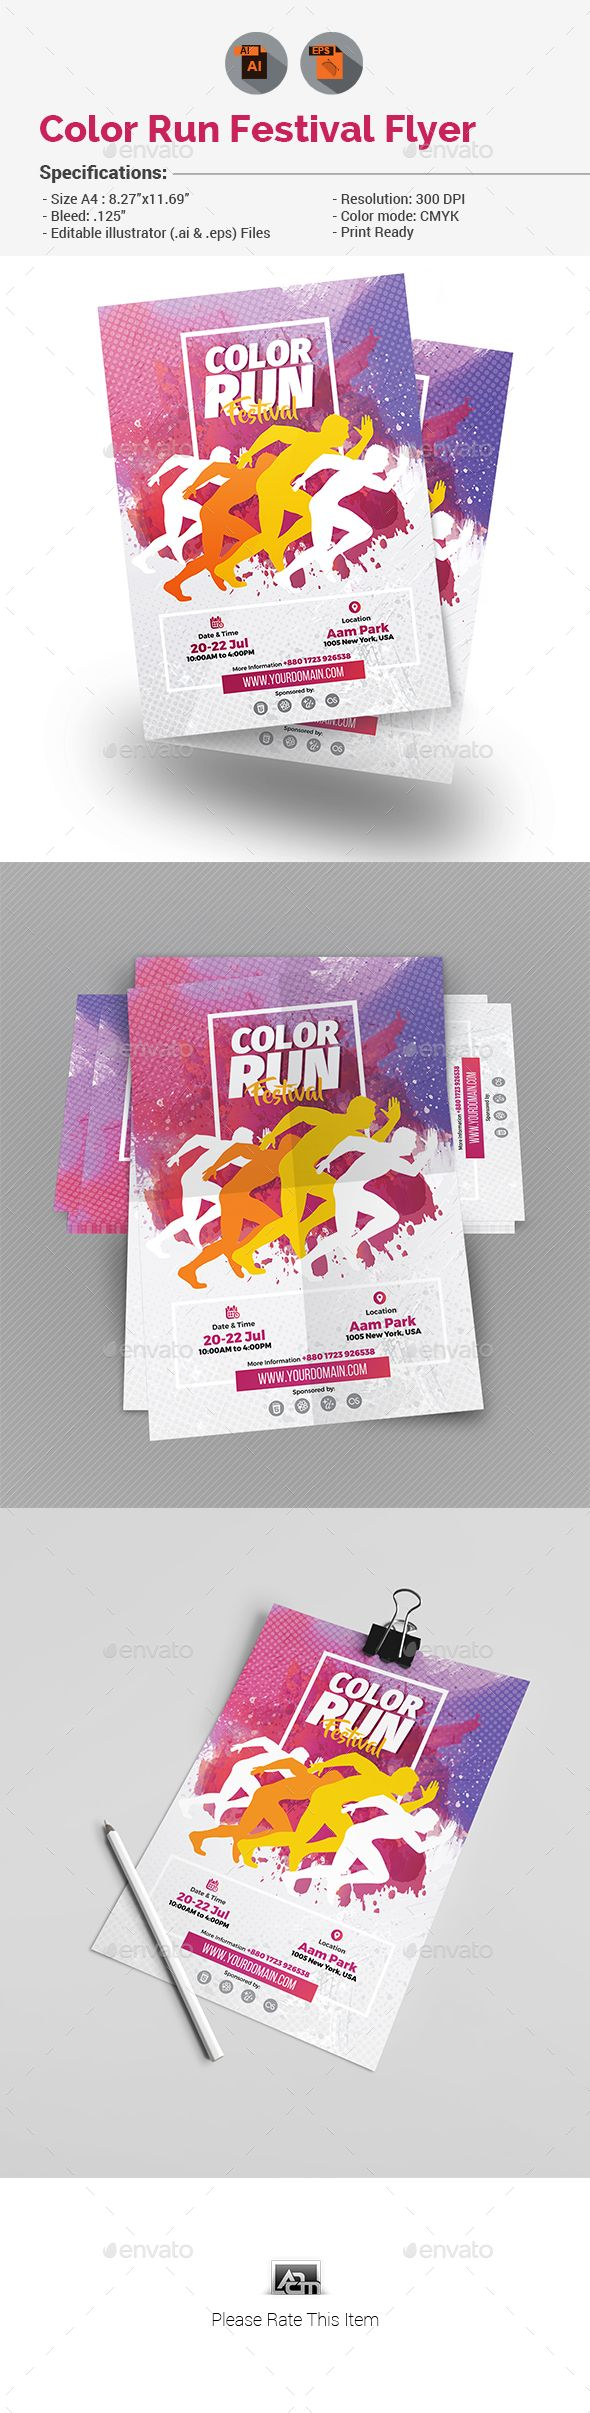 Color Run Festival Flyer Template Vector EPS AI Illustrator